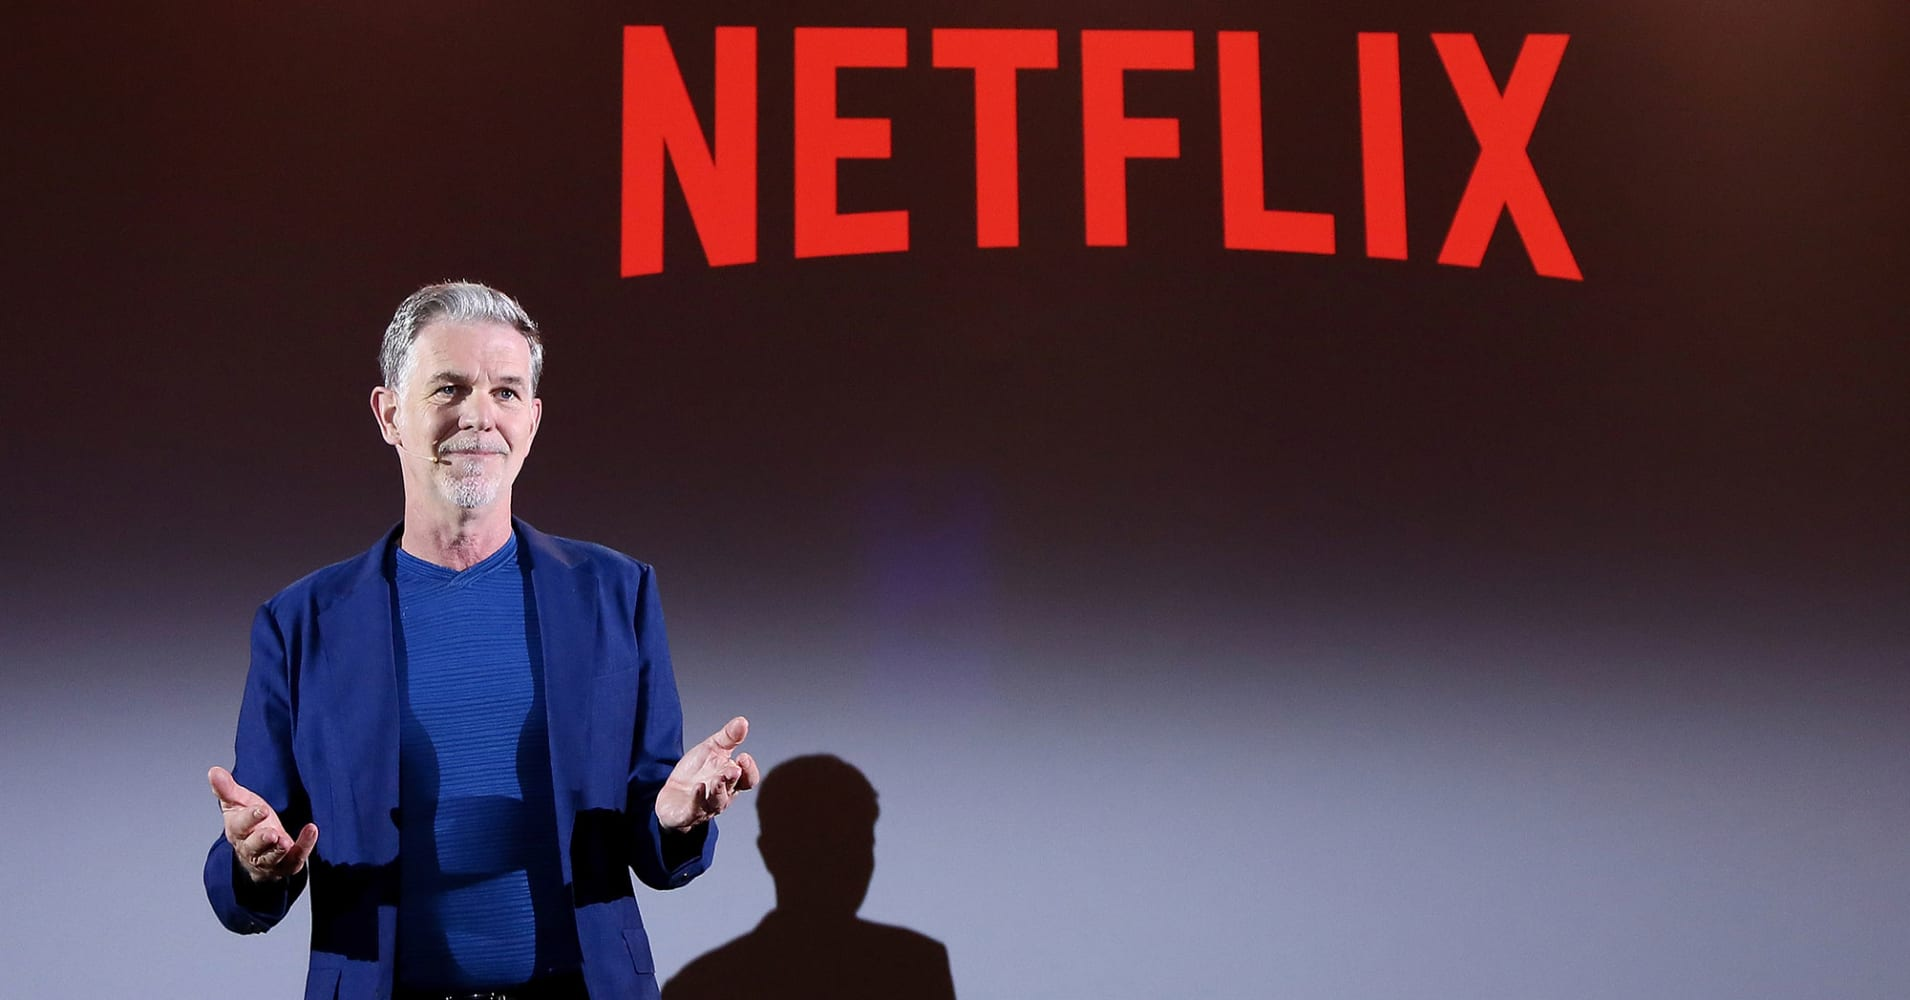 Netflix Gets Only its Second 'Sell' Rating on Wall Street as Buckingham Downgrades Before Earnings